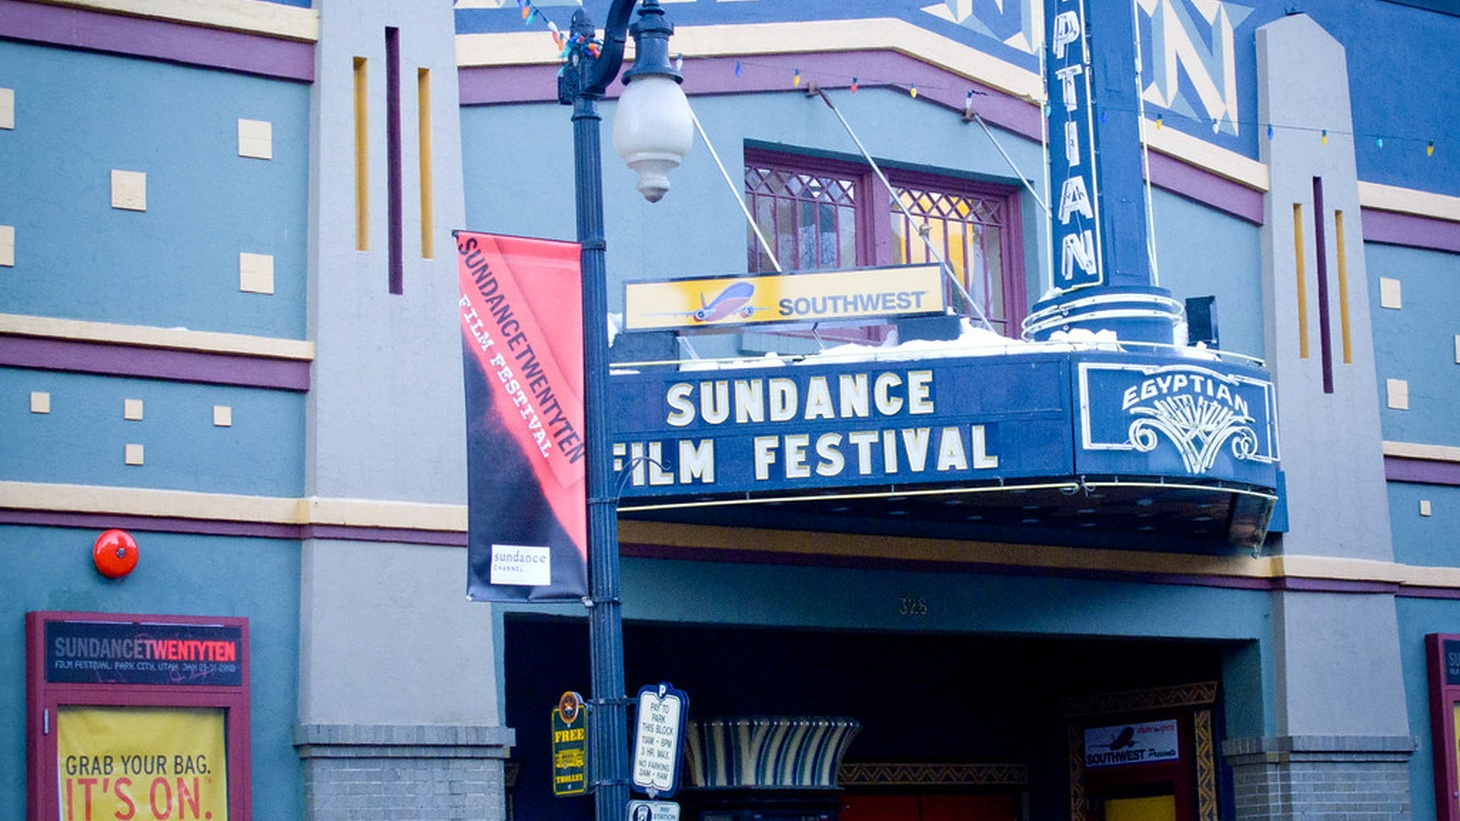 In past years, many Sundance premieres happened at packed screenings at the Egyptian Theater in Park City. This year, the famous festival will be a mostly virtual experience.